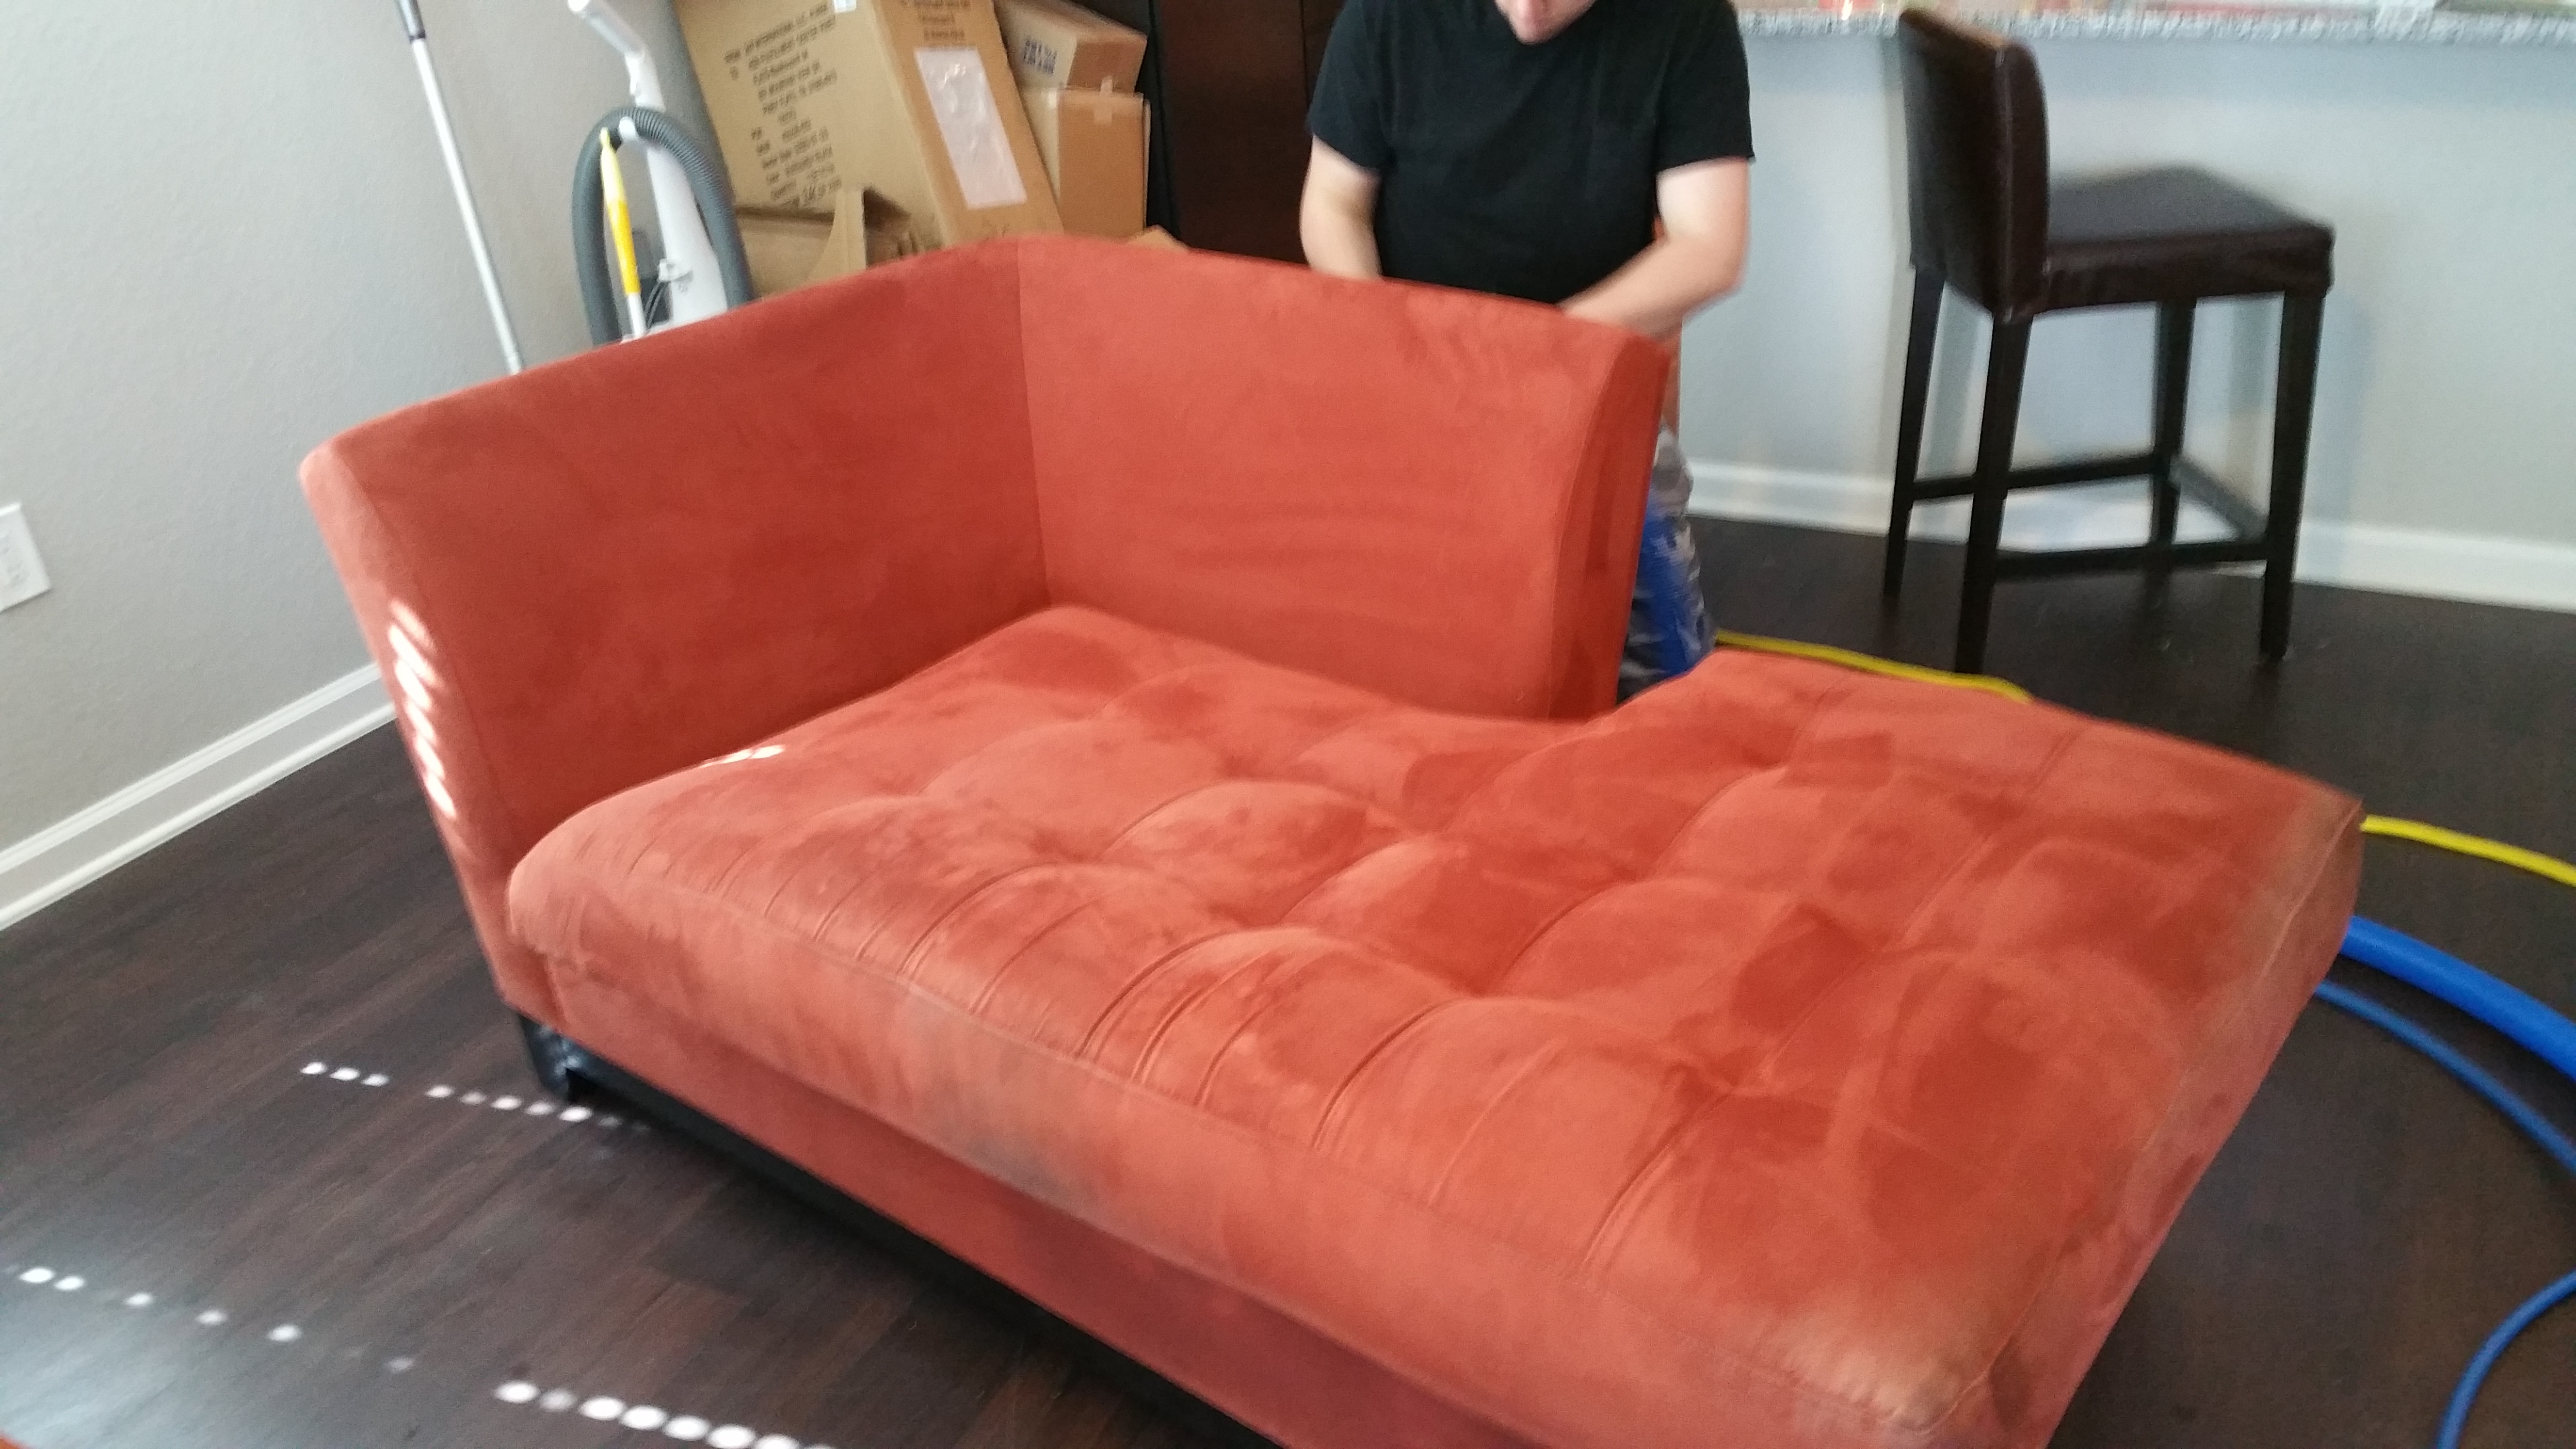 Charming Tampa Upholstery Repair Gallery Ideas - Best Image Engine ...